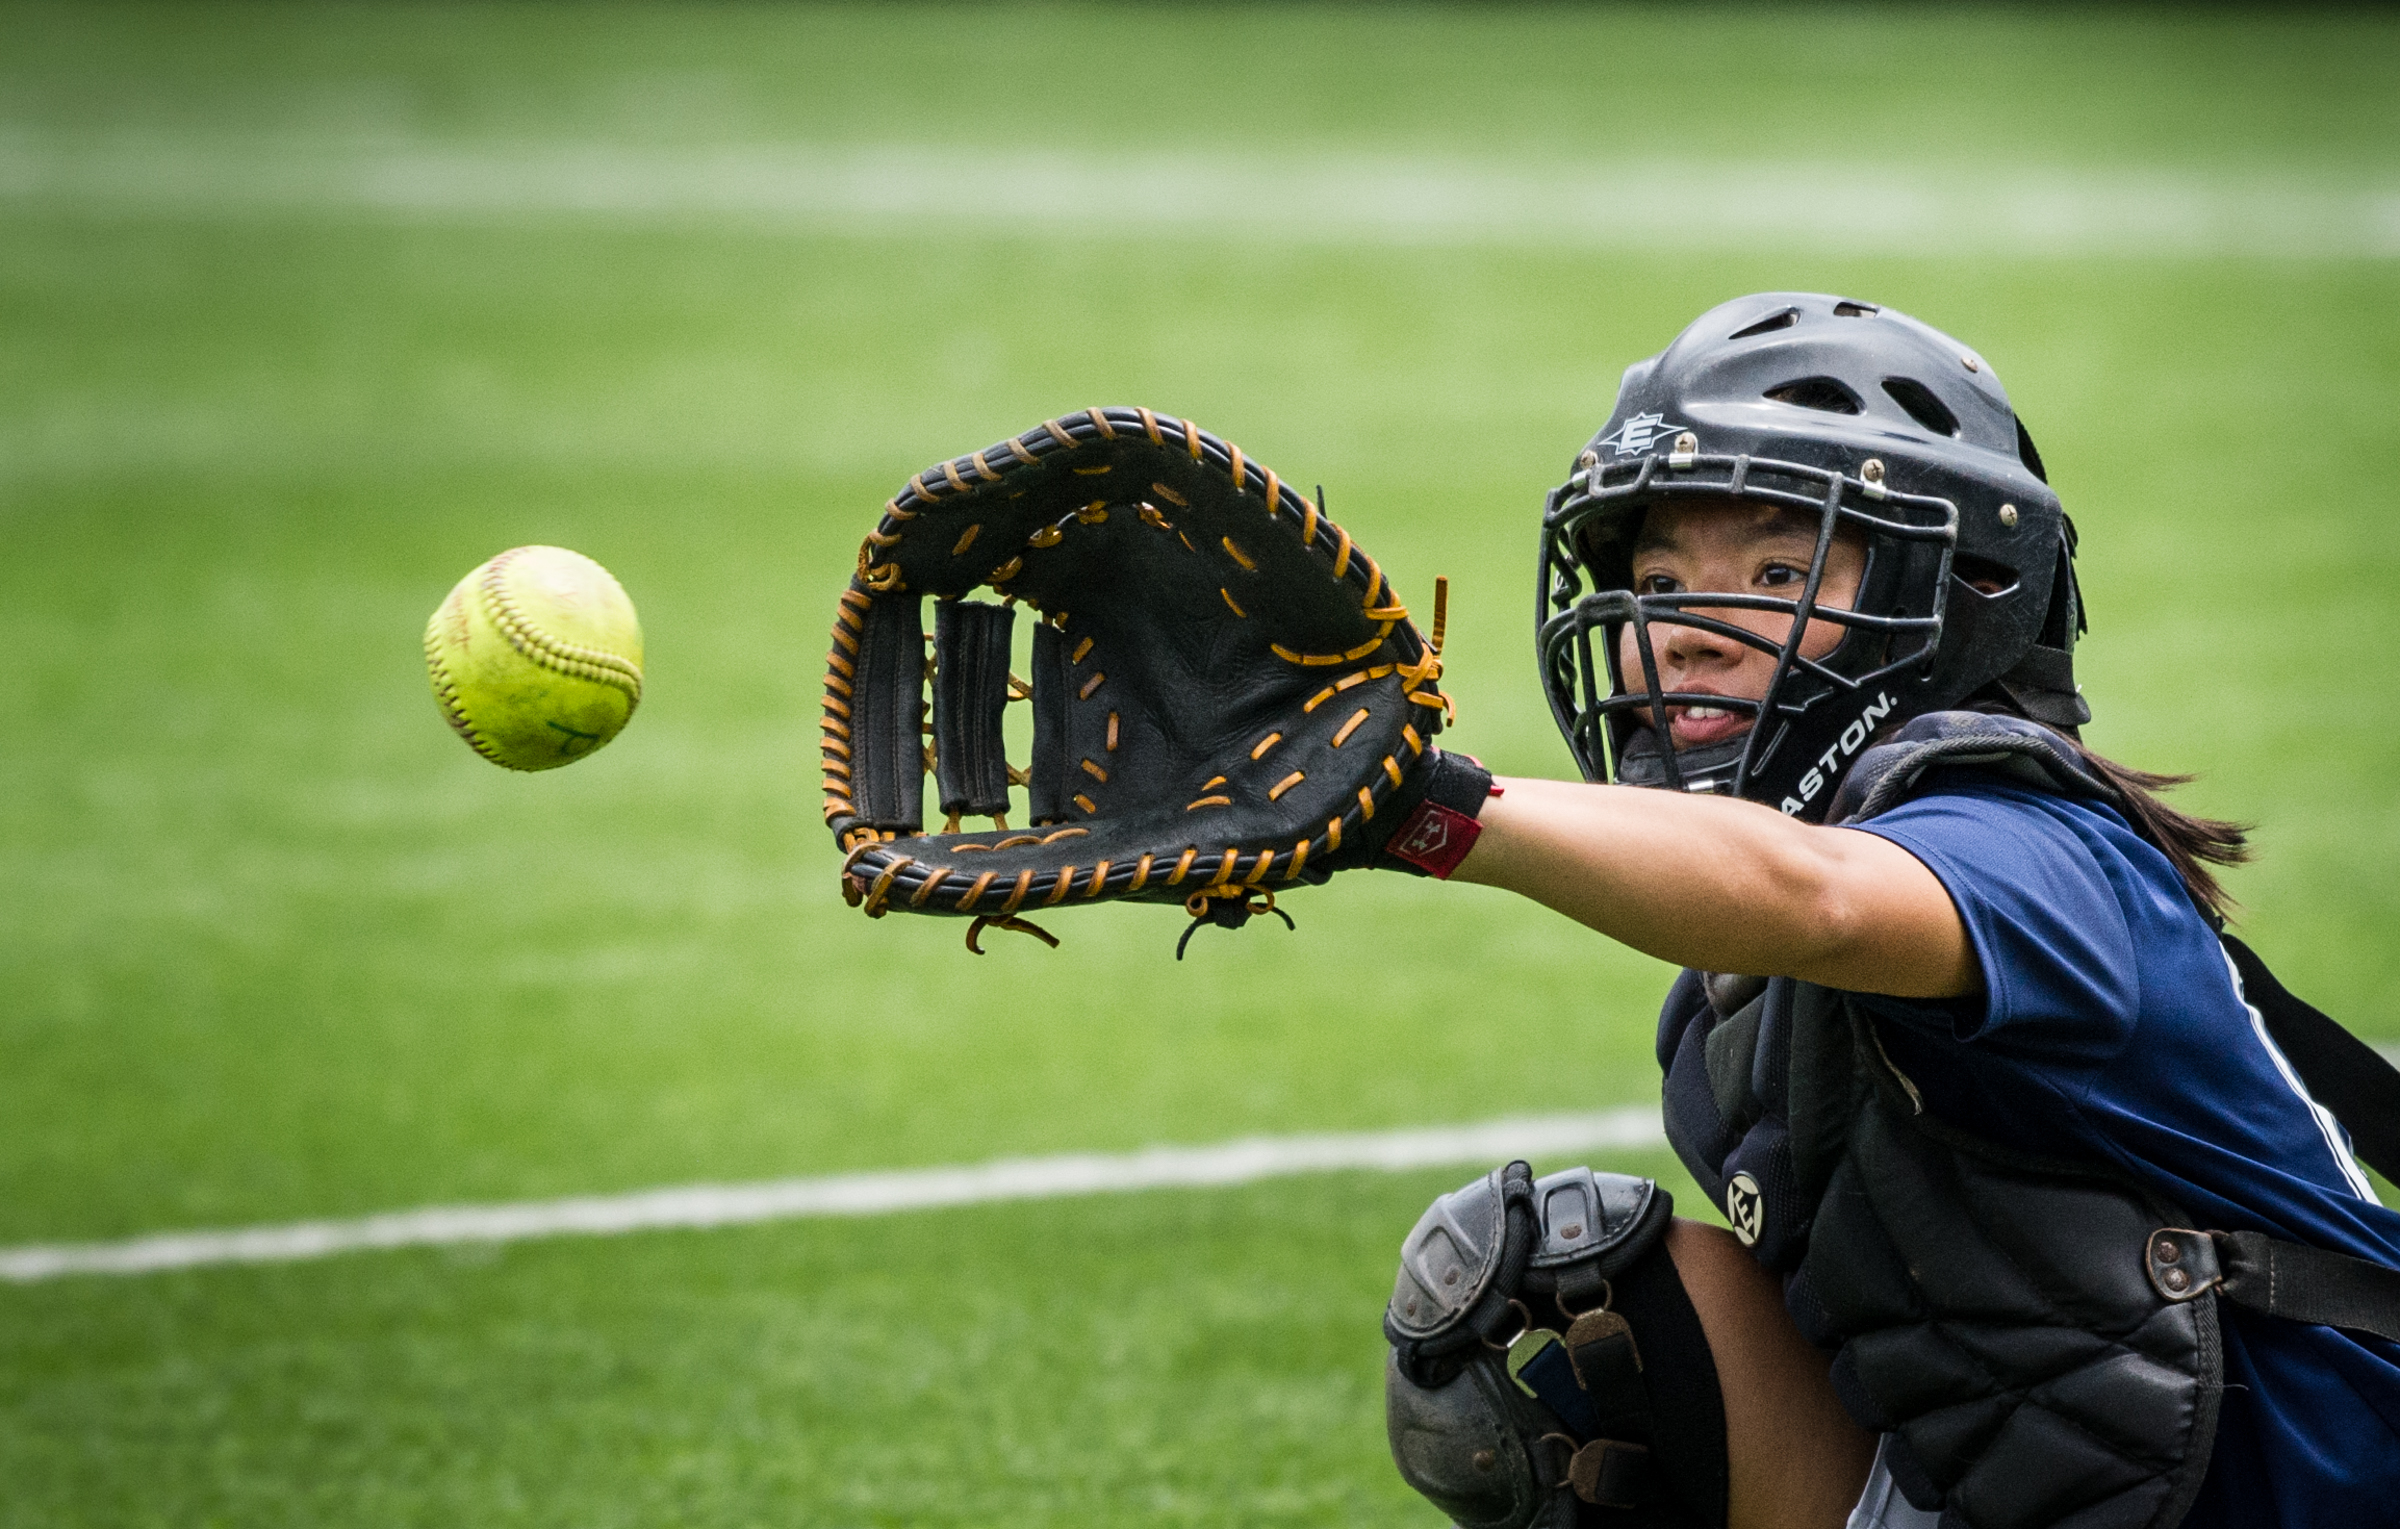 A Singaporean player prepares to catch the ball during the ORA Gryphon Cup slow pitch tournament at Raffles Institution.